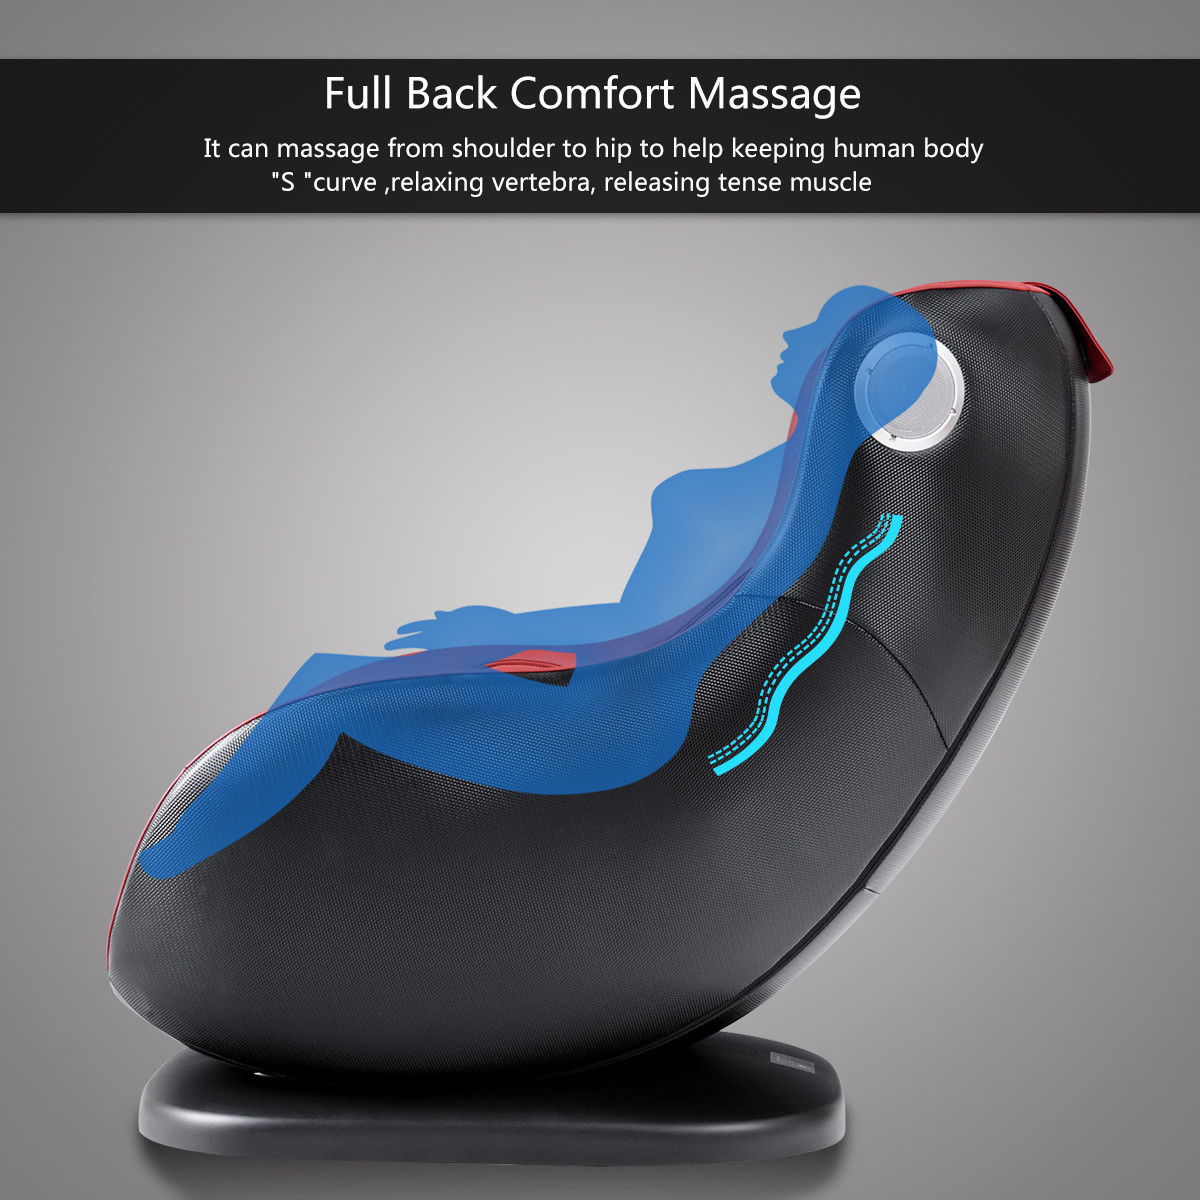 Luxury Massage Chair Heated W/ Bluetooth Speaker &USB Charger - image 1 of 10